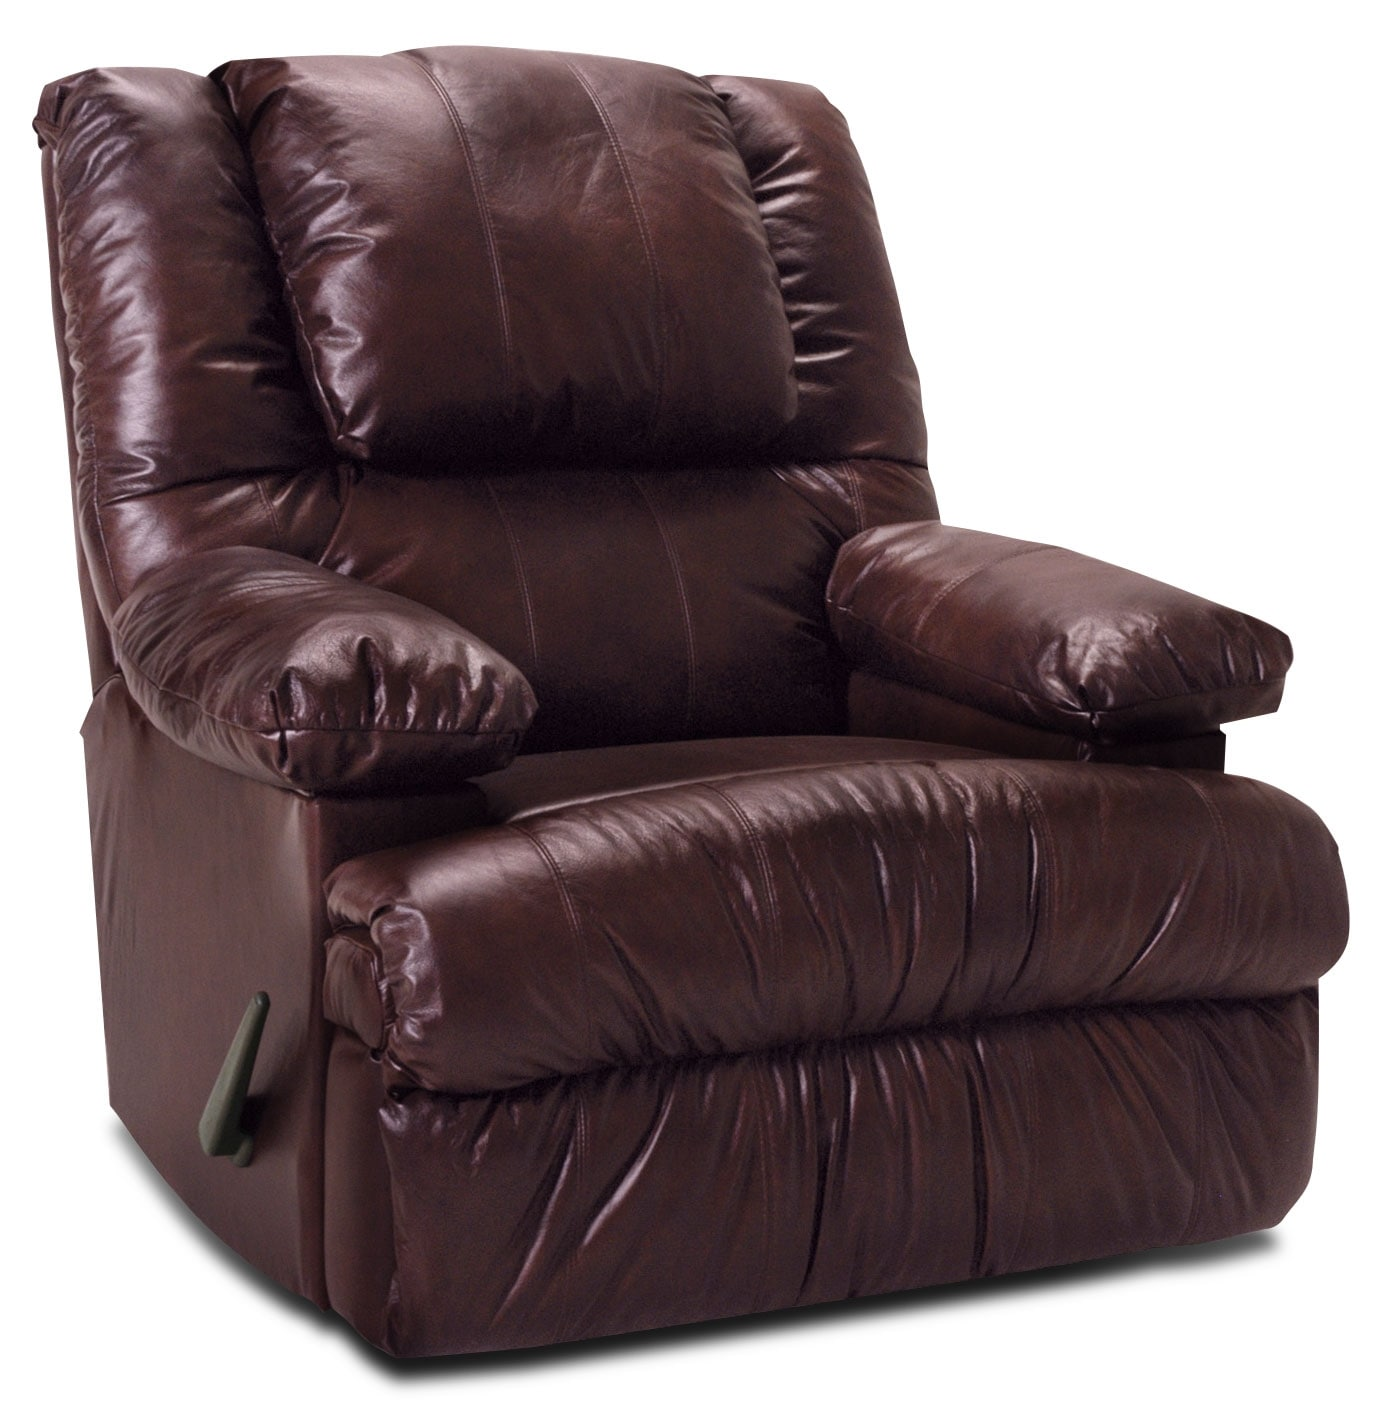 Designed2B Recliner 5598 Genuine Leather Rocker with Storage Arms - Burgundy